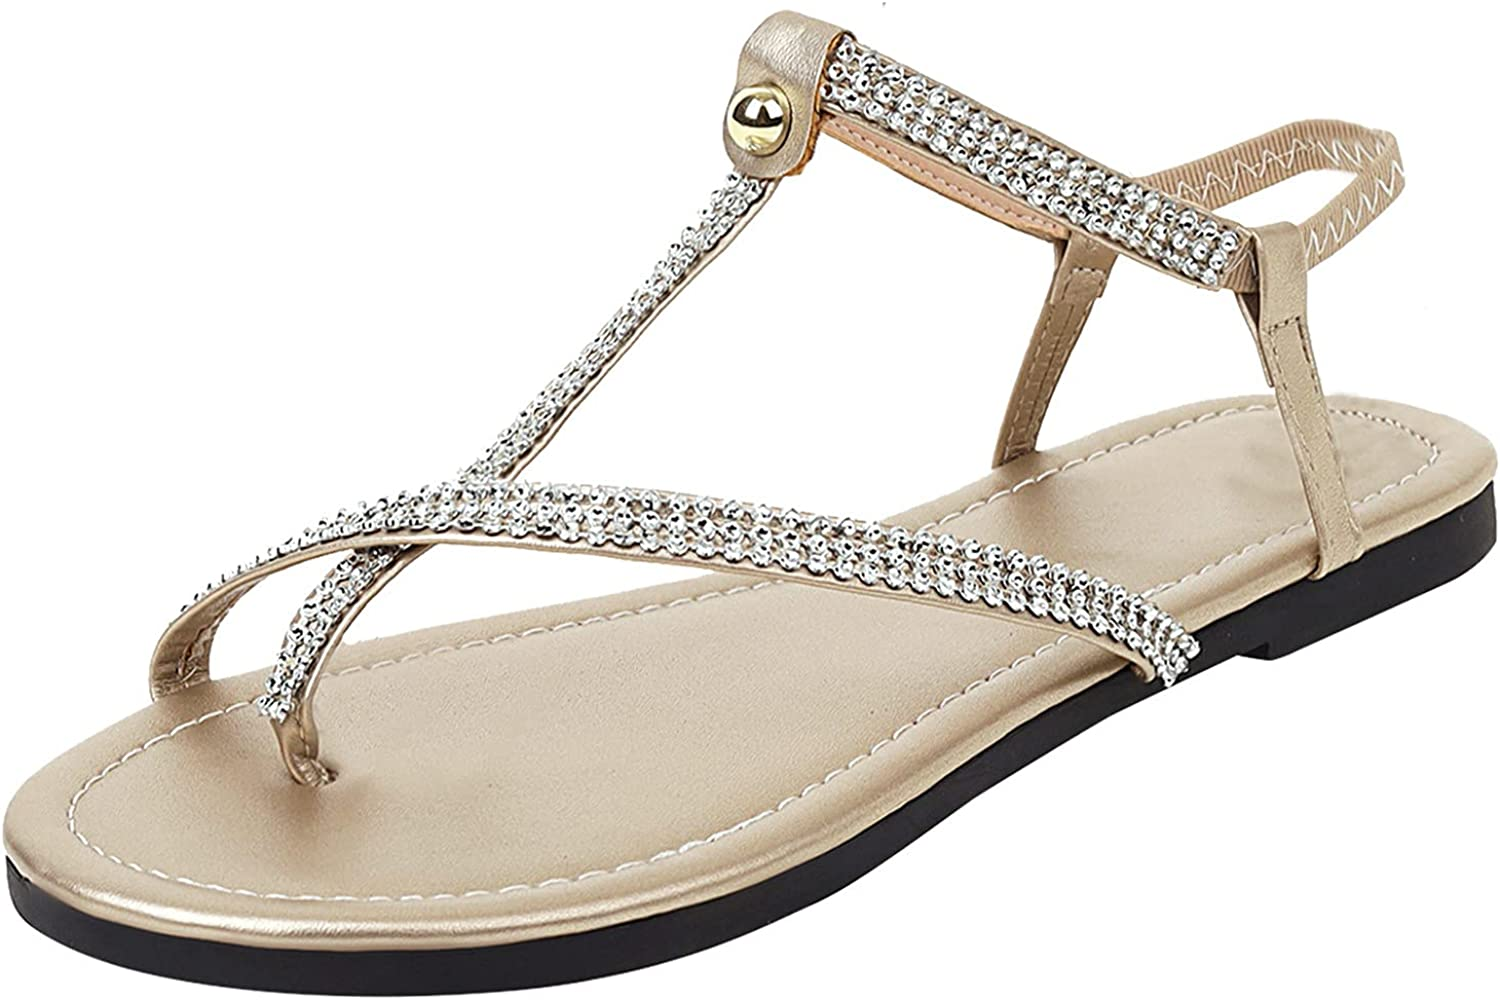 Ladies Shinny Rhinestone Special price for a limited time Beach Sandals Flops flip Flat Si Bombing new work Casual